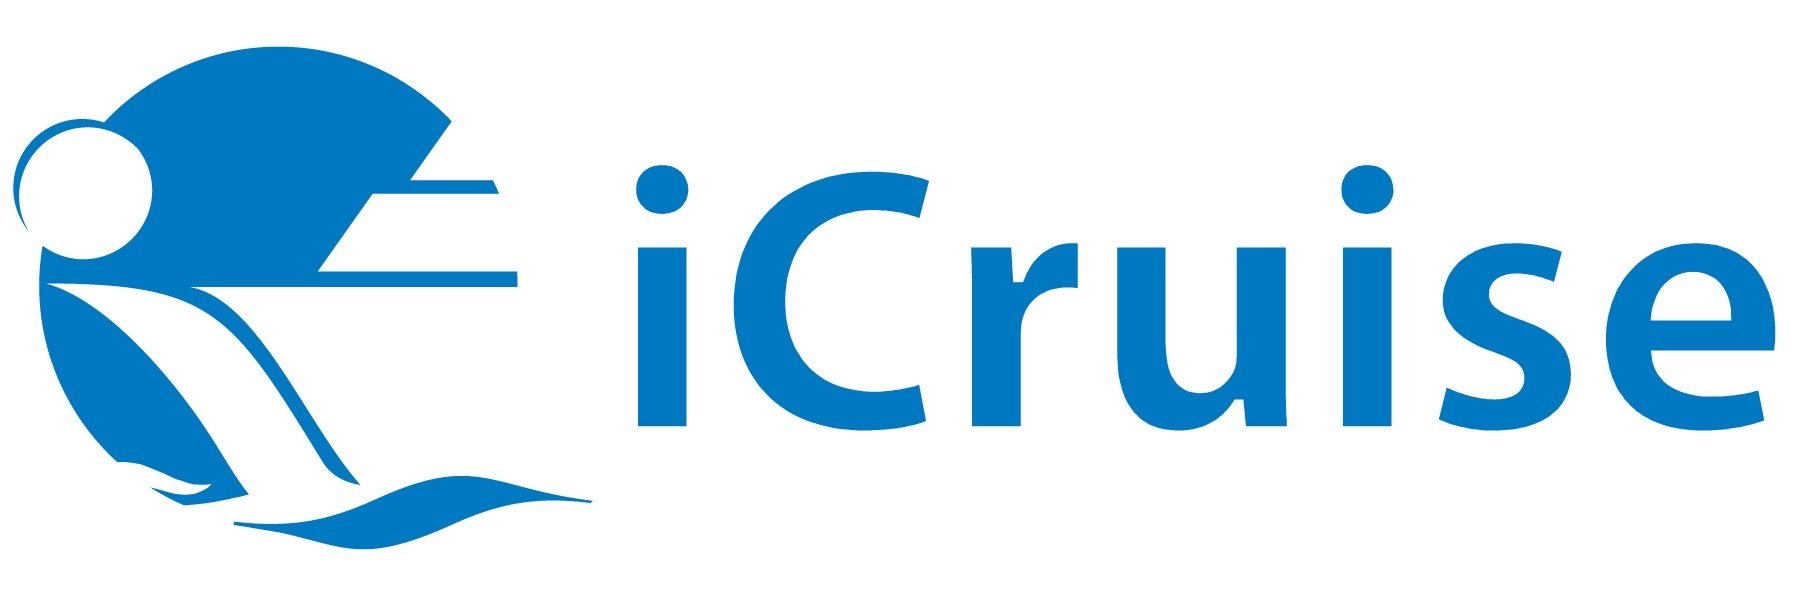 iCruise celebrates the return of cruising with the World's Largest Cruise & Travel Sale from October 11-17, with great deals on cruises and other travel (October 2021)